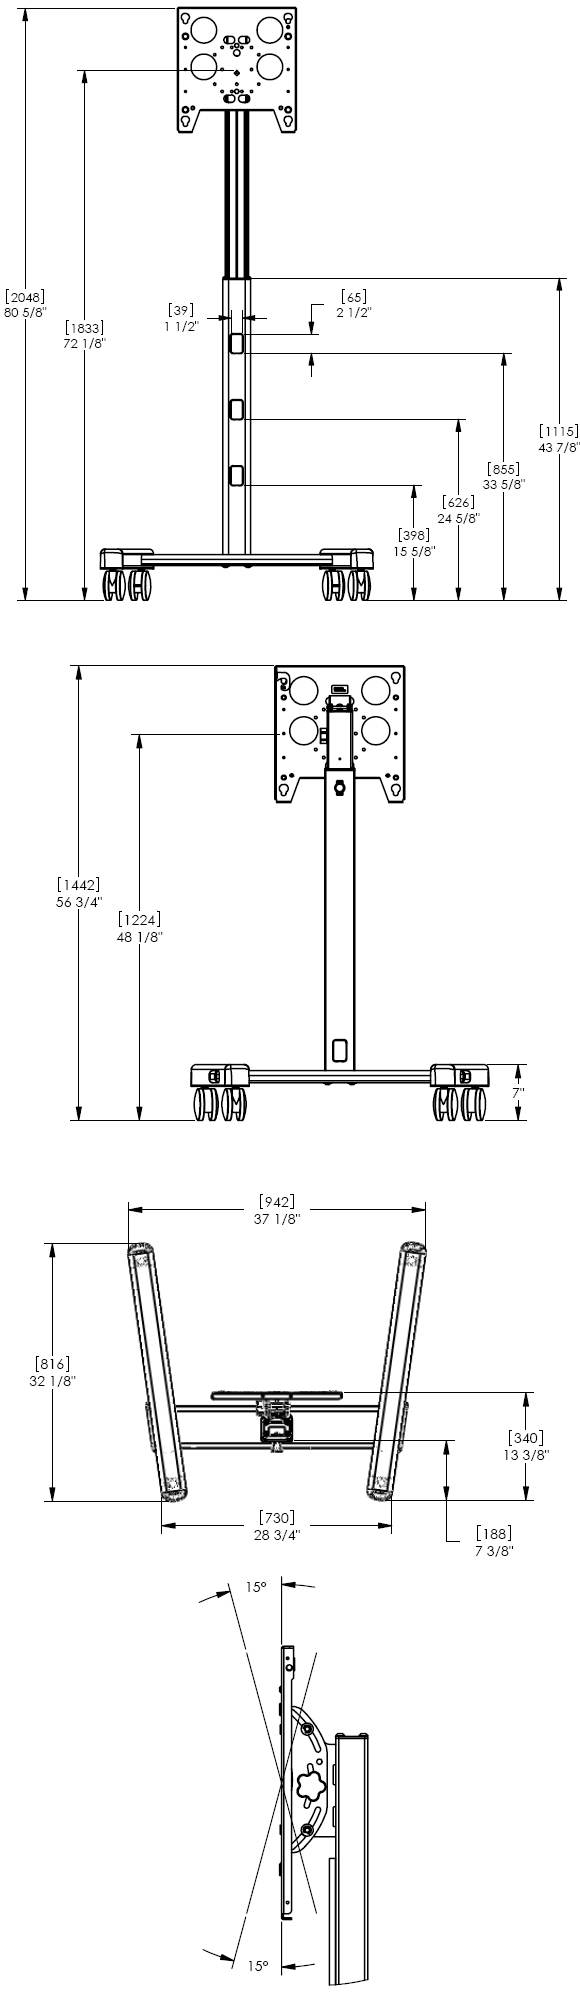 Technical Drawing for Chief PFCUB or PFCUS Universal Flat Panel Mobile Cart